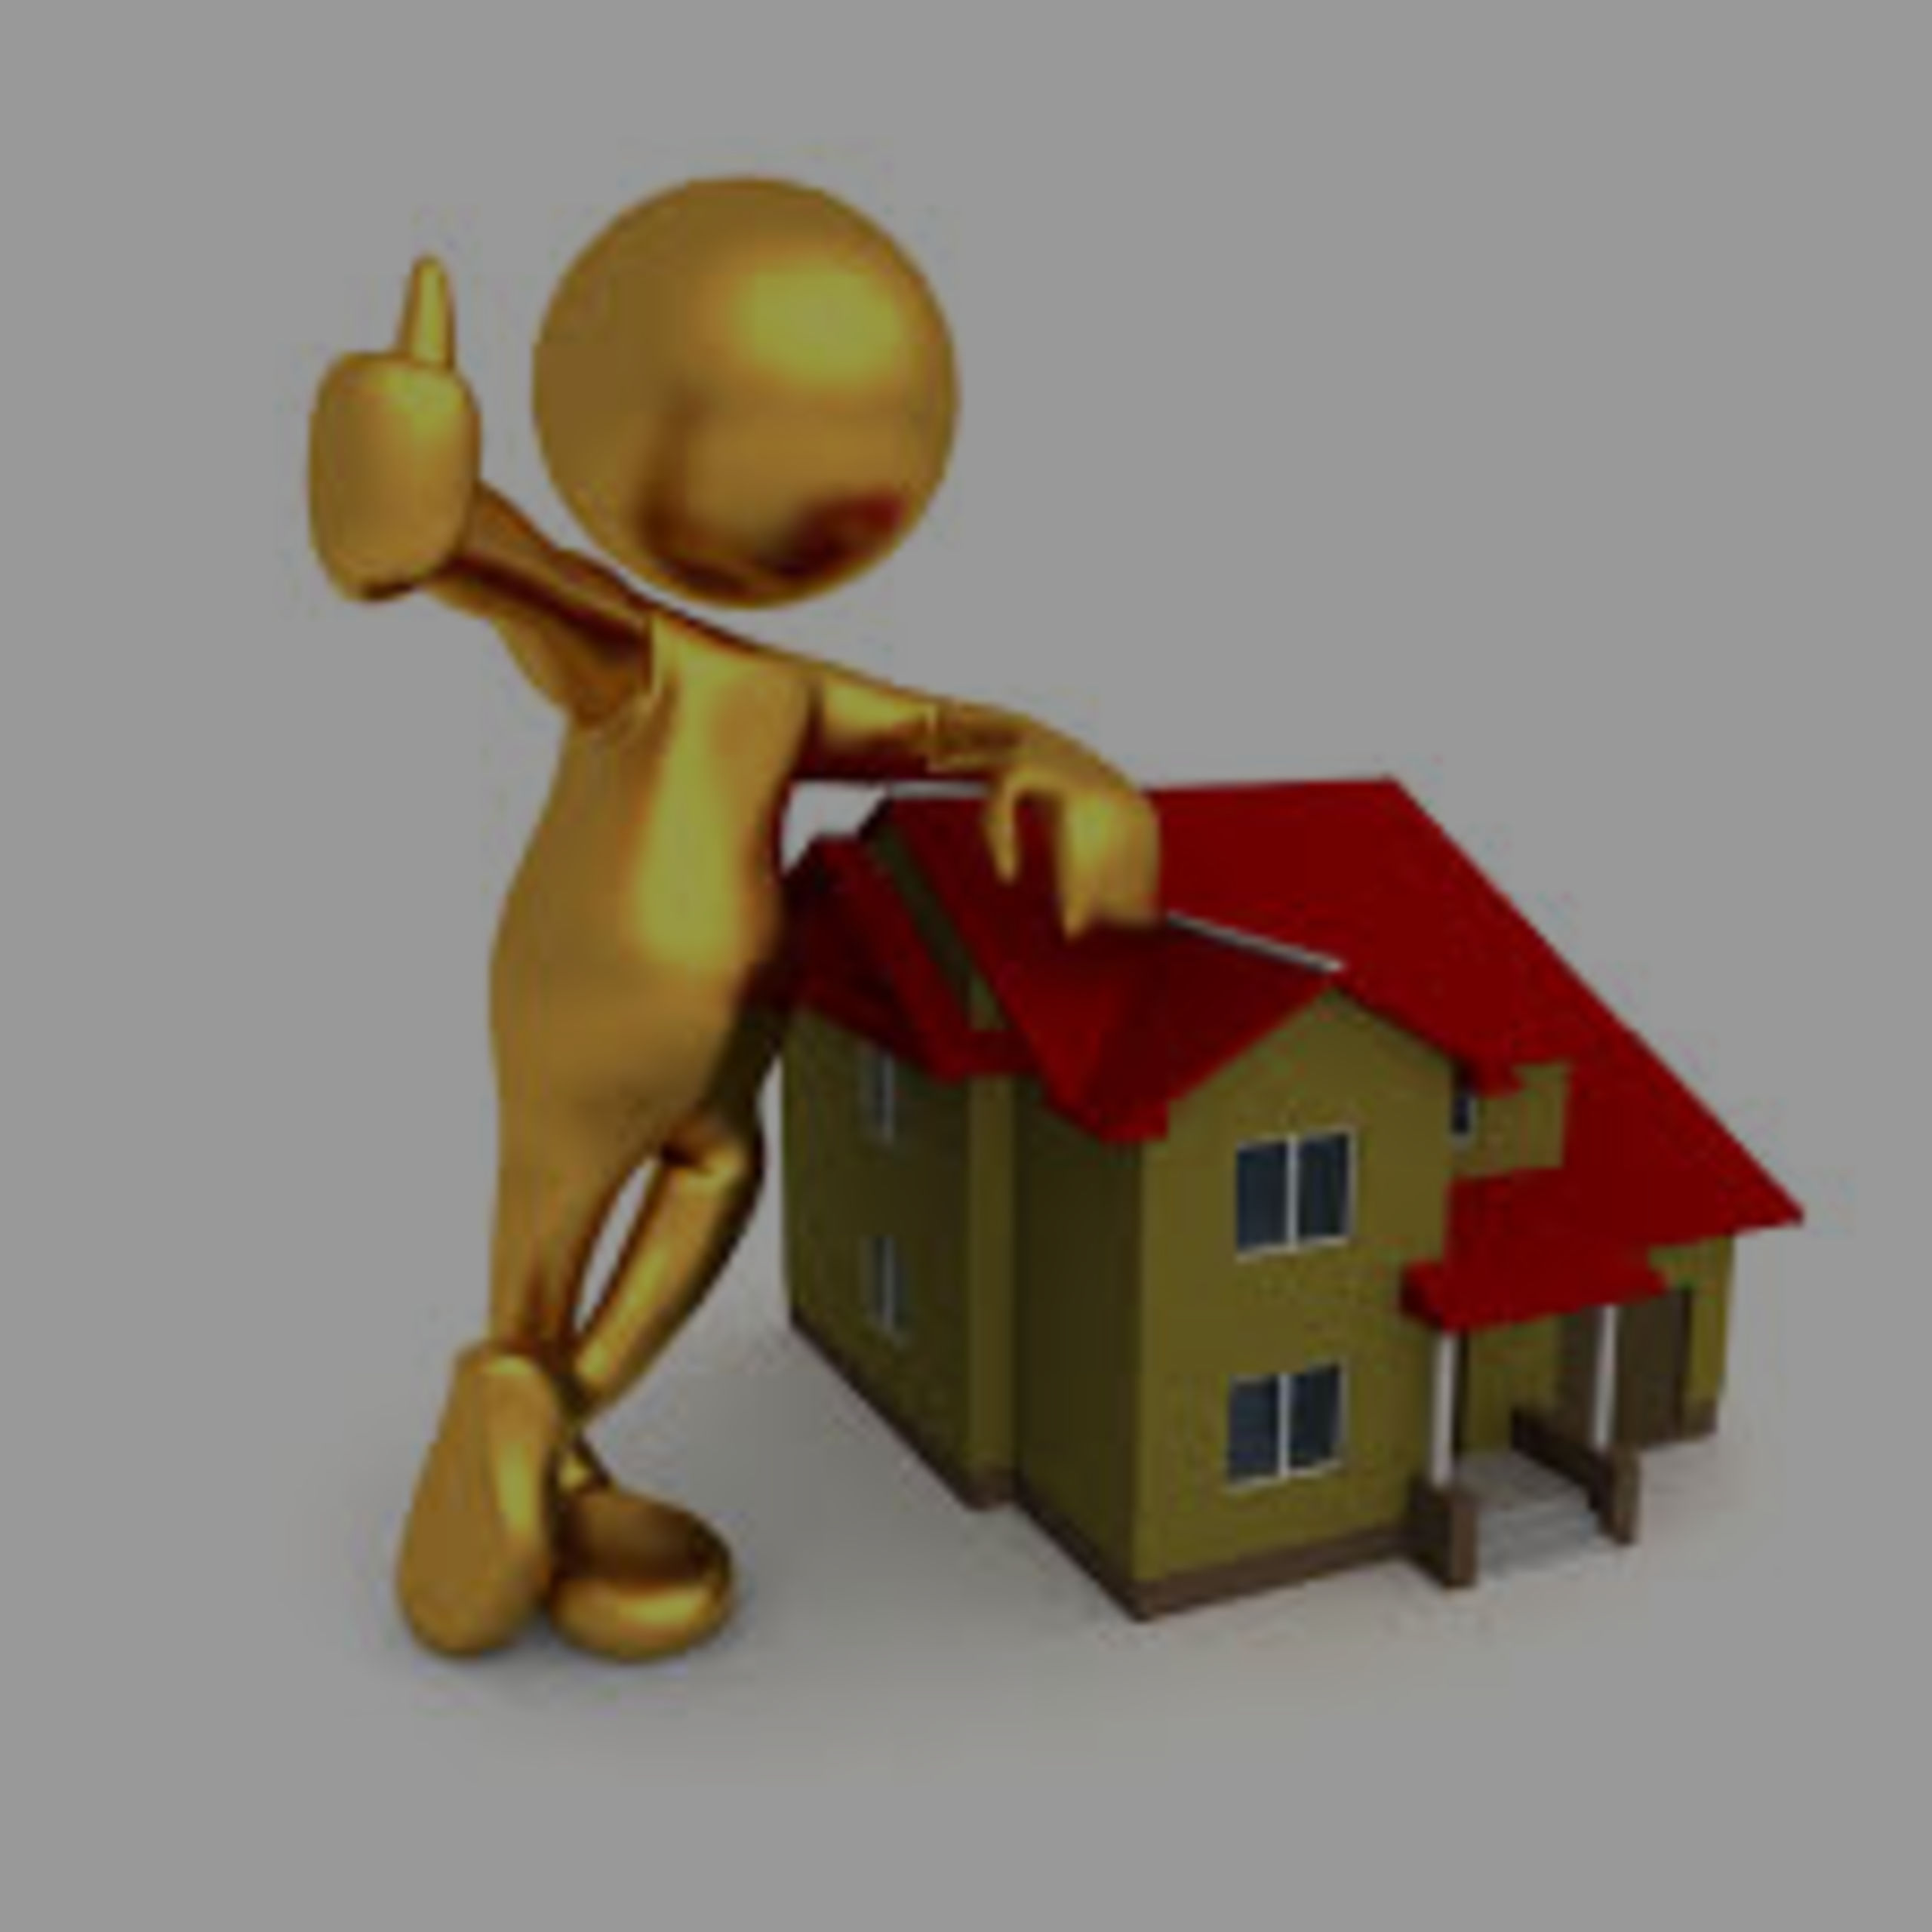 How can I Increase the Value of My House?